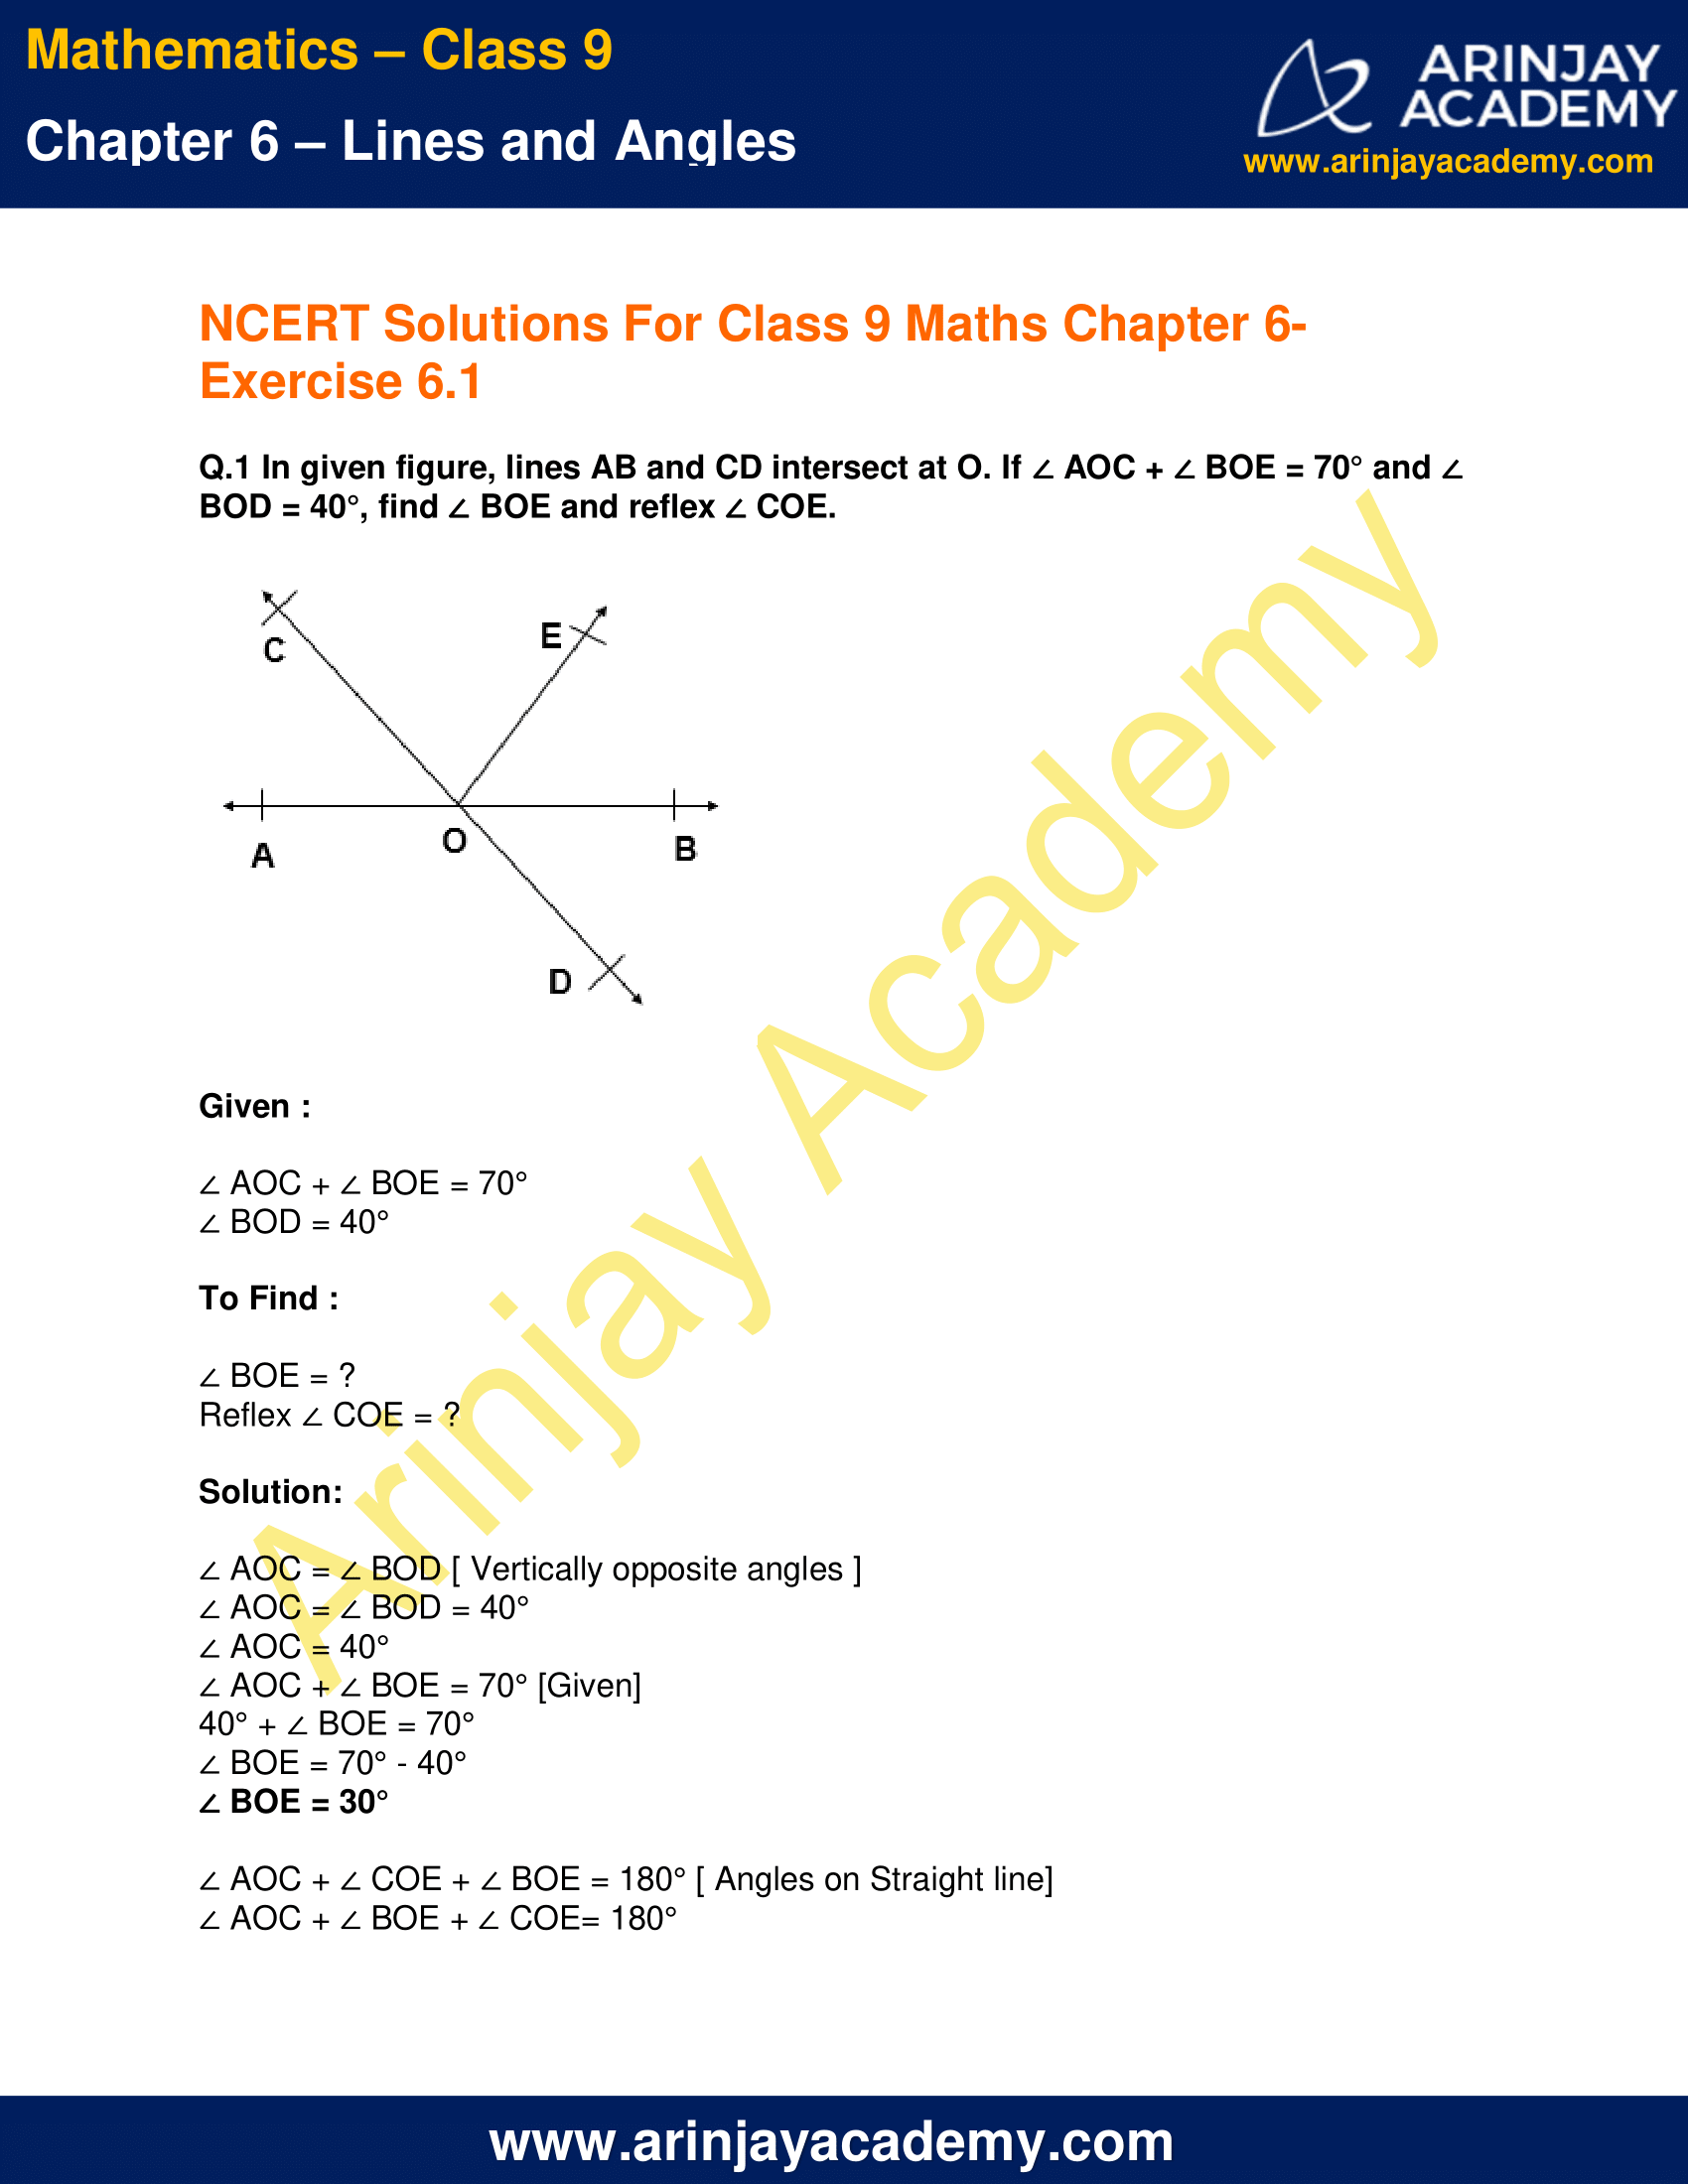 NCERT Solutions for Class 9 Maths Chapter 6 Exercise 6.1 image 1